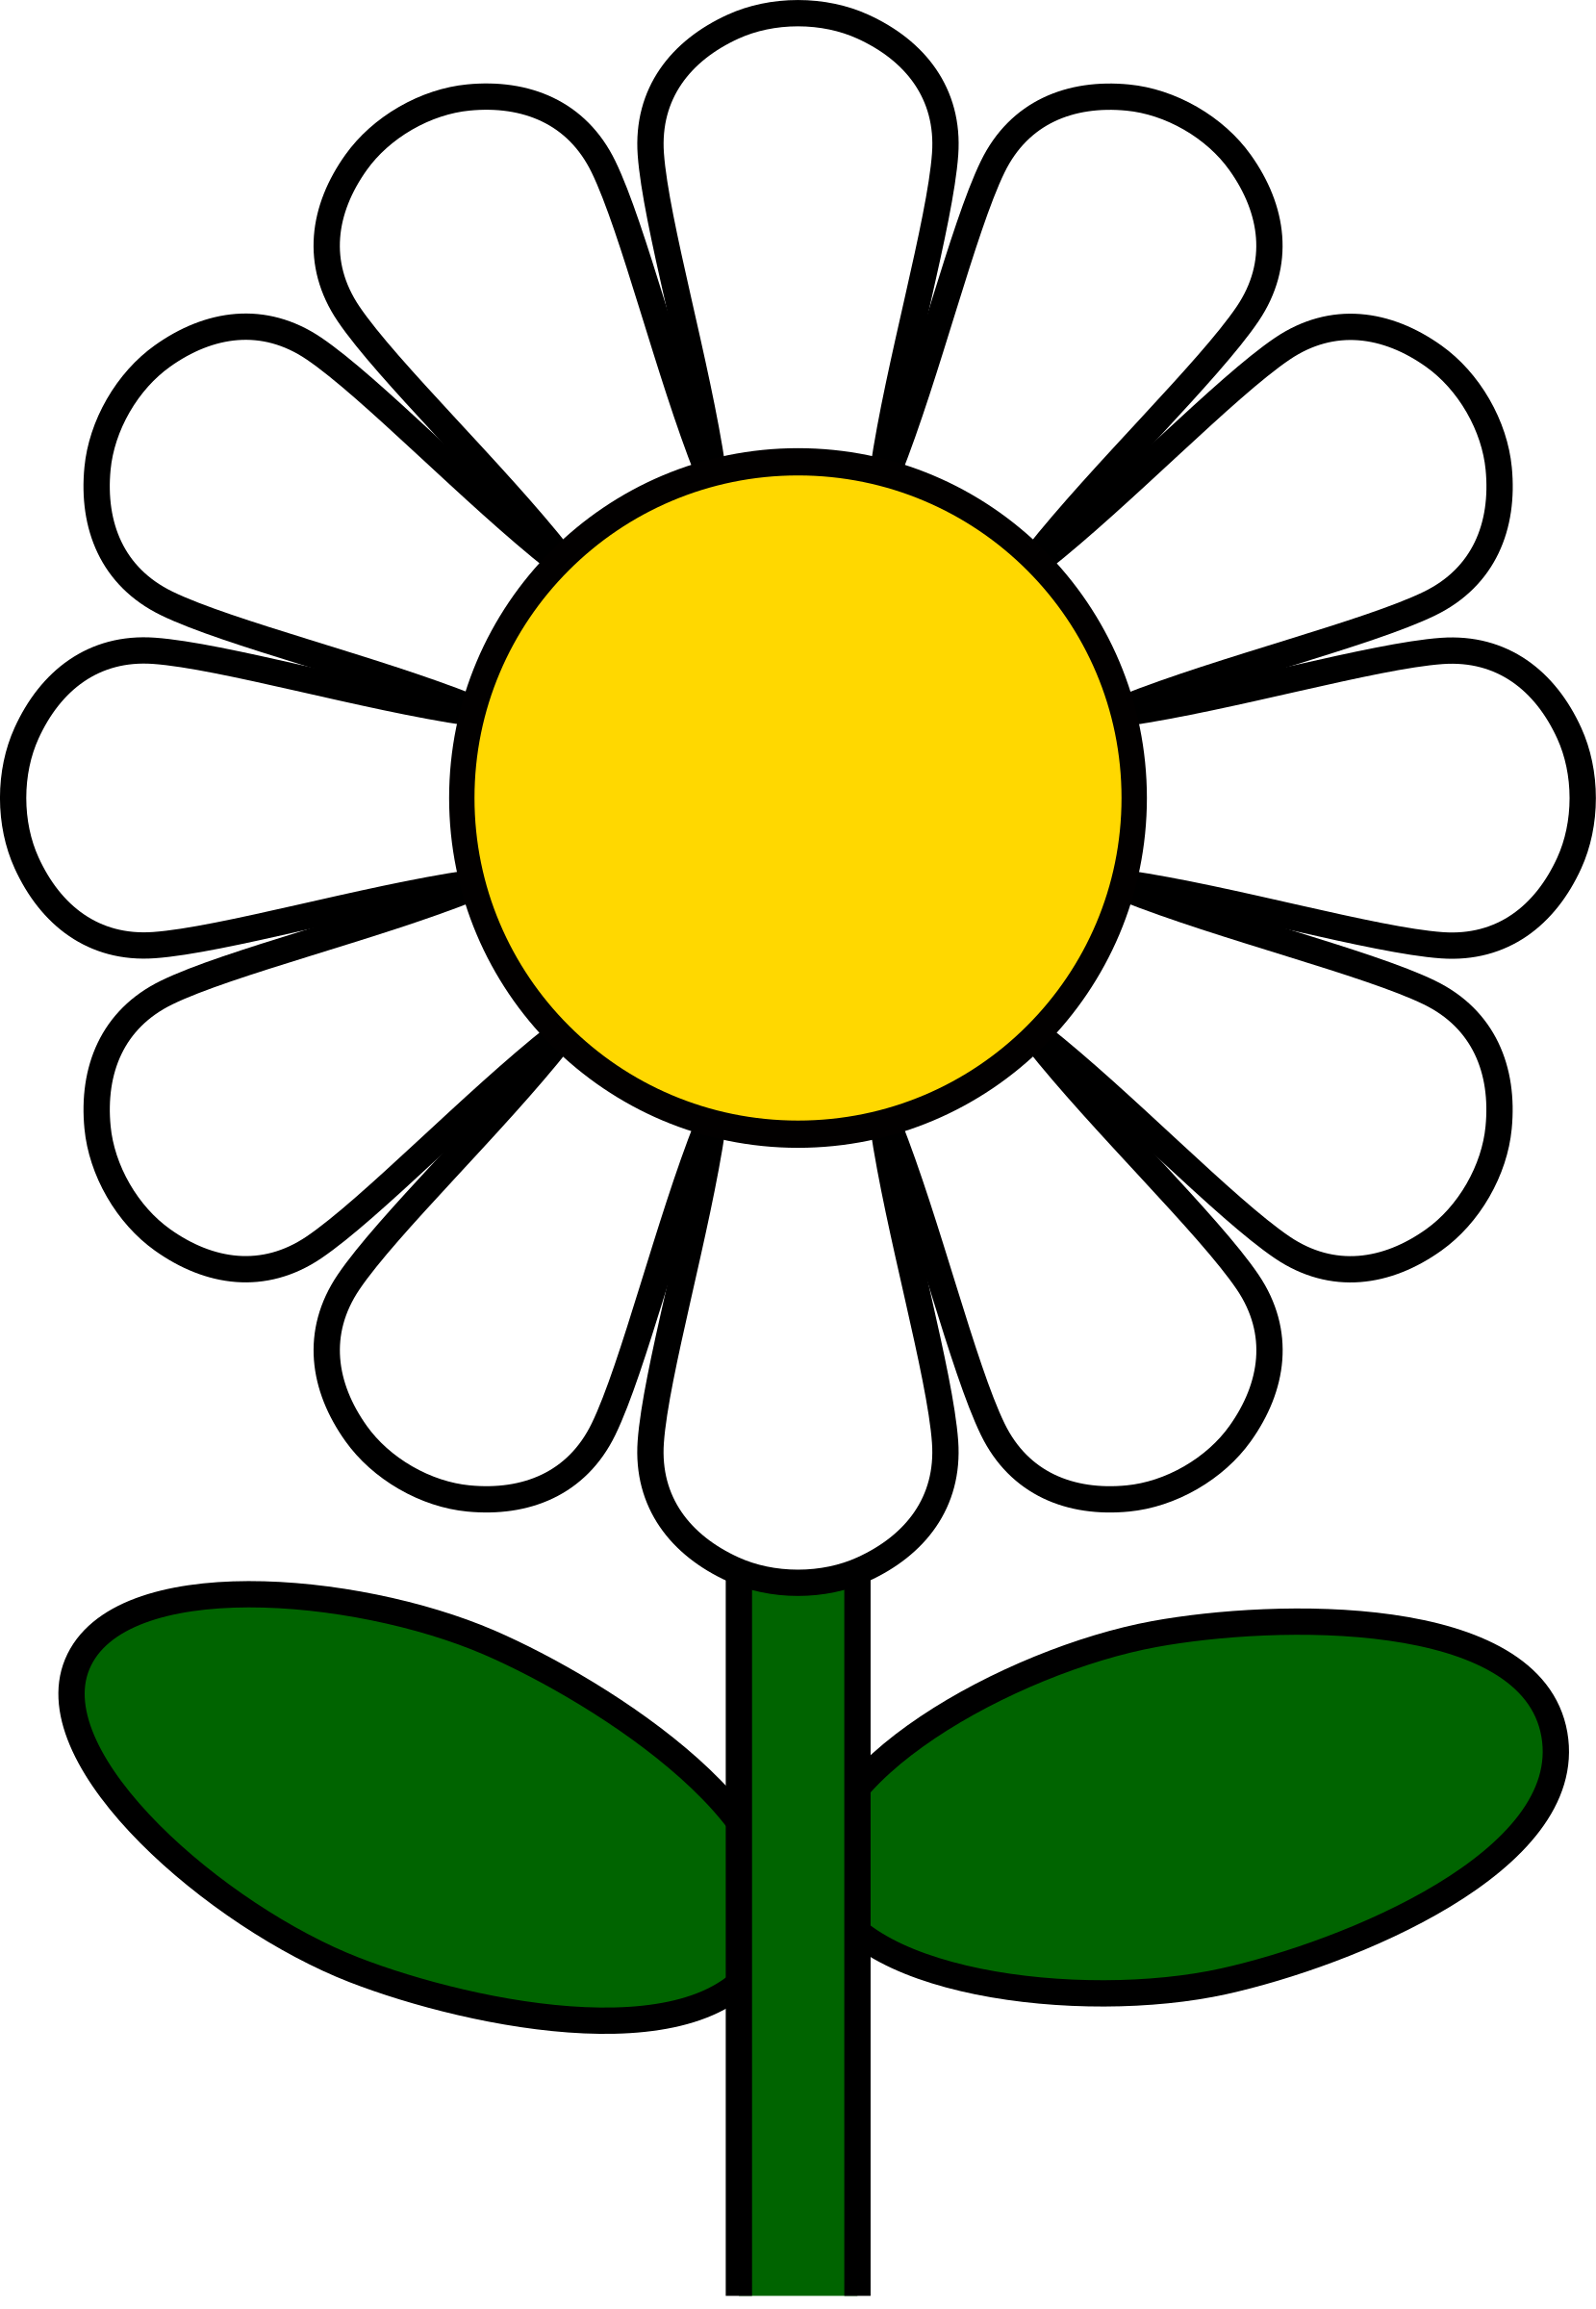 Daisy by laobc a daisy one of the symbols of spring on daisy by laobc a daisy one of the symbols of spring biocorpaavc